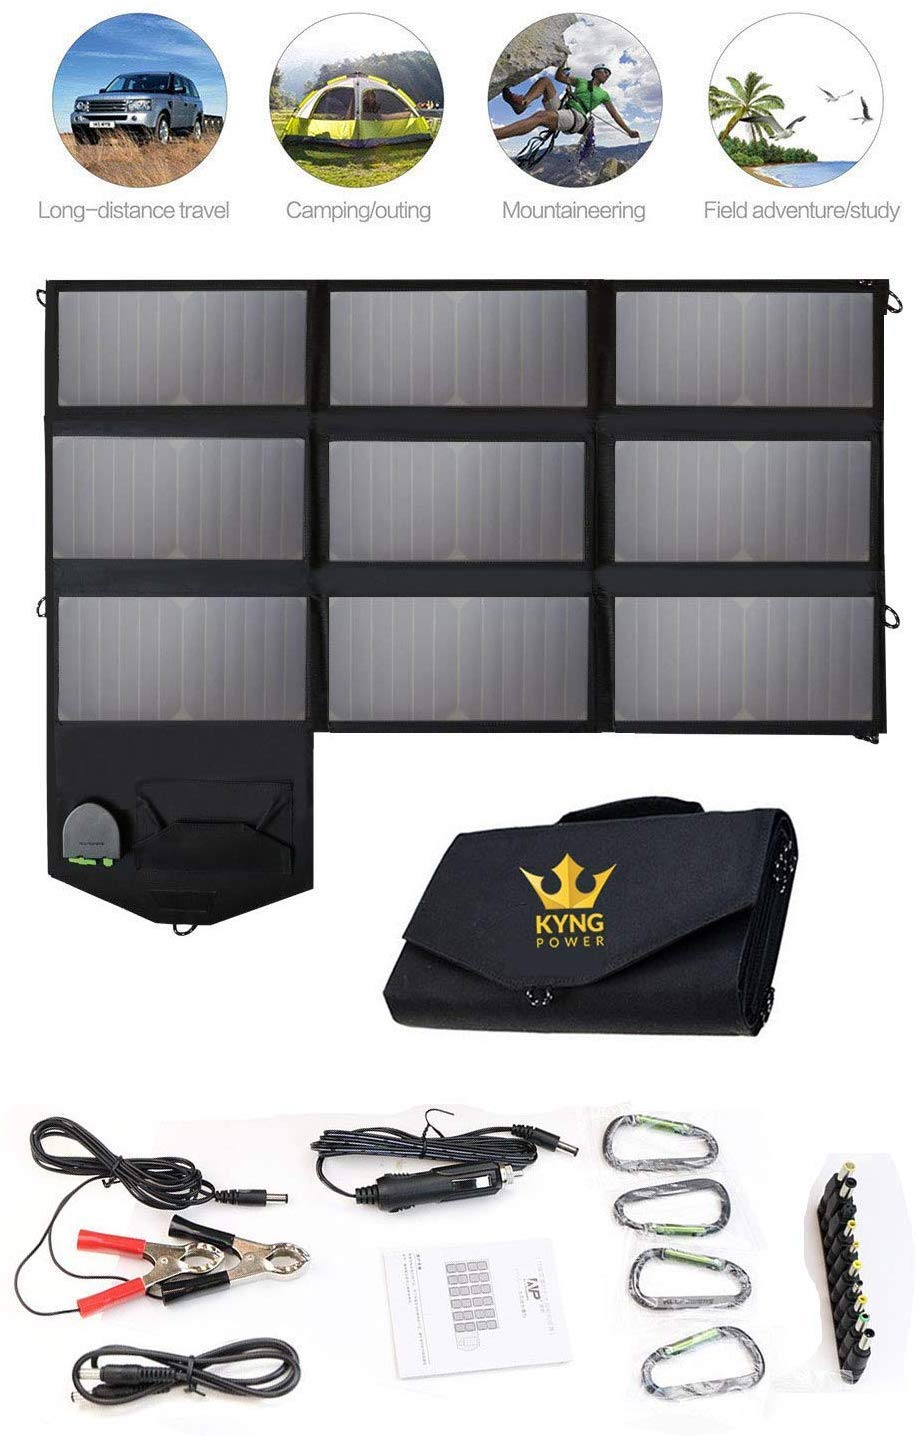 Kyng Power 60w Solar Panel Portable Power